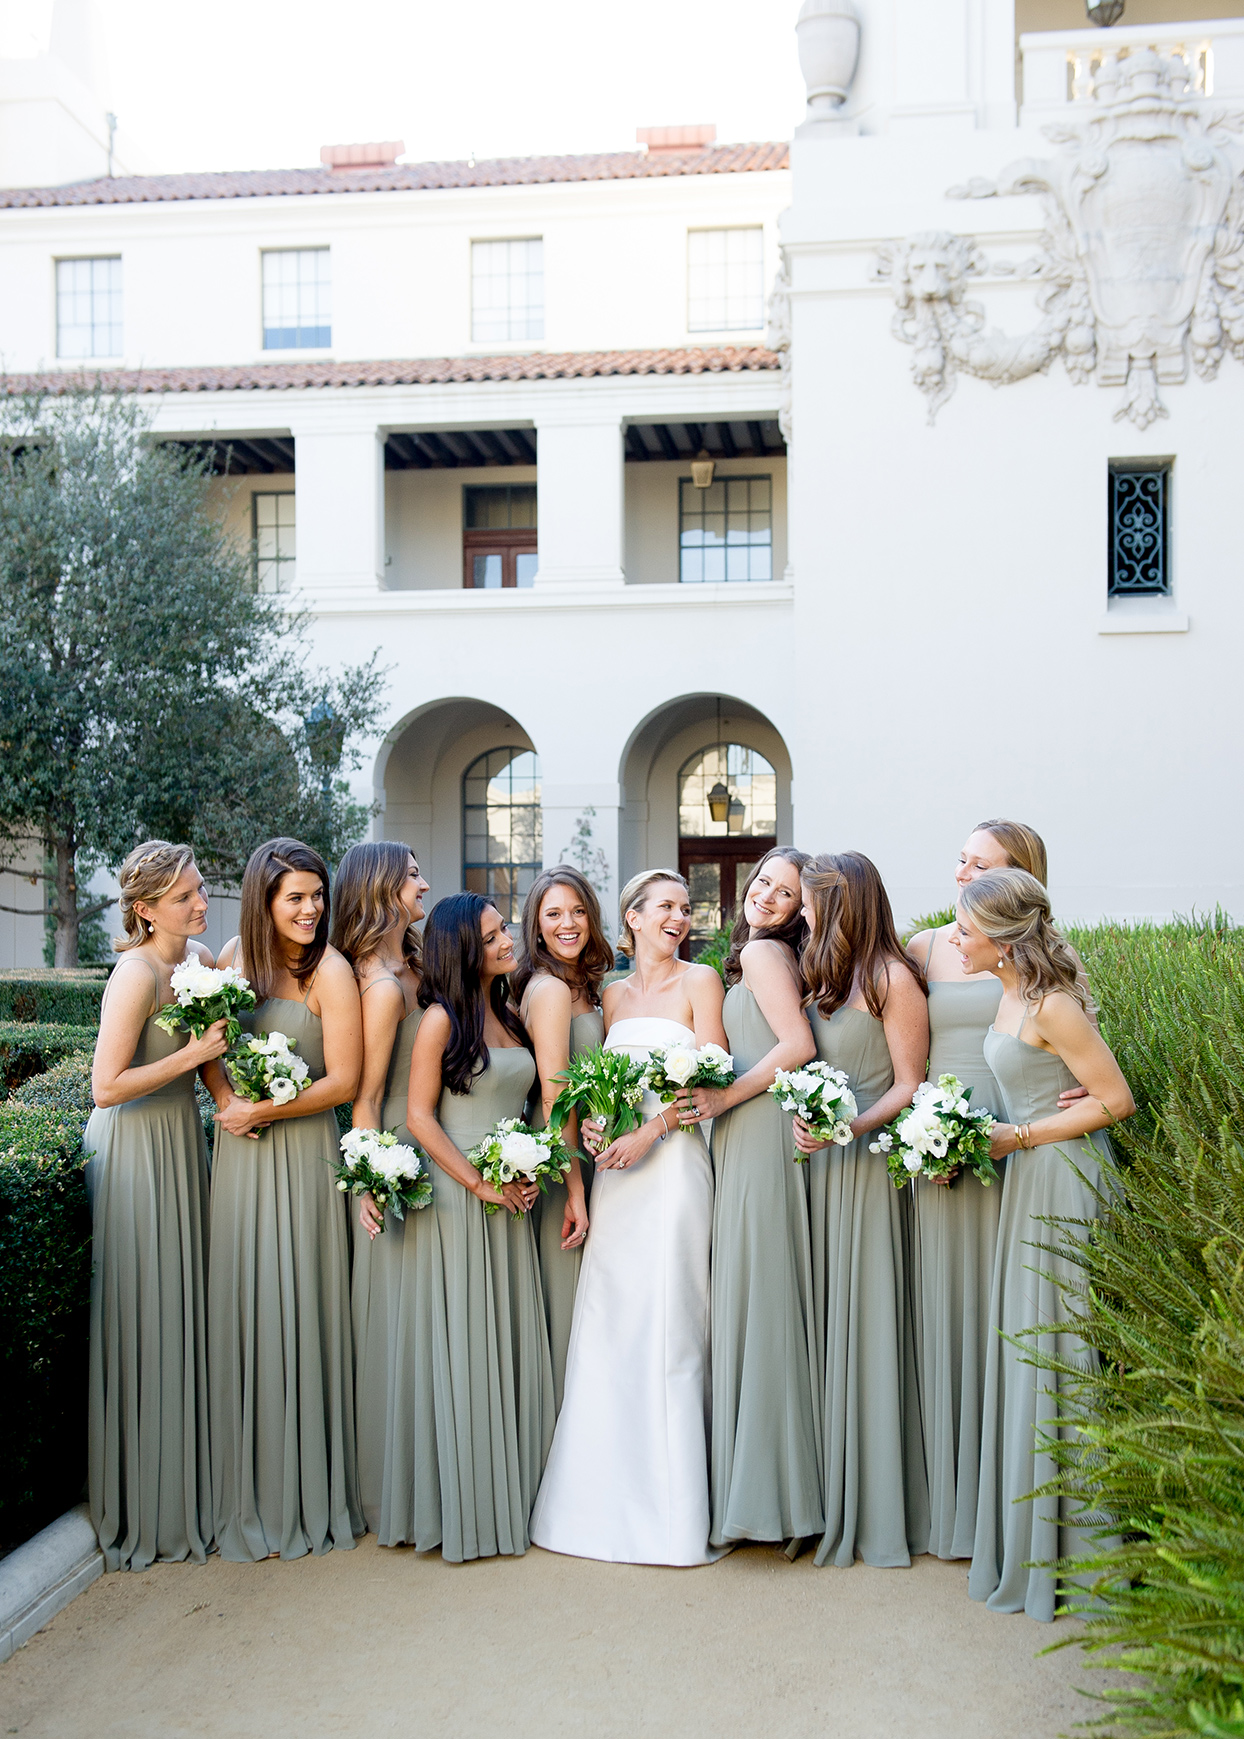 wedding bride and bridesmaids in pale green dresses